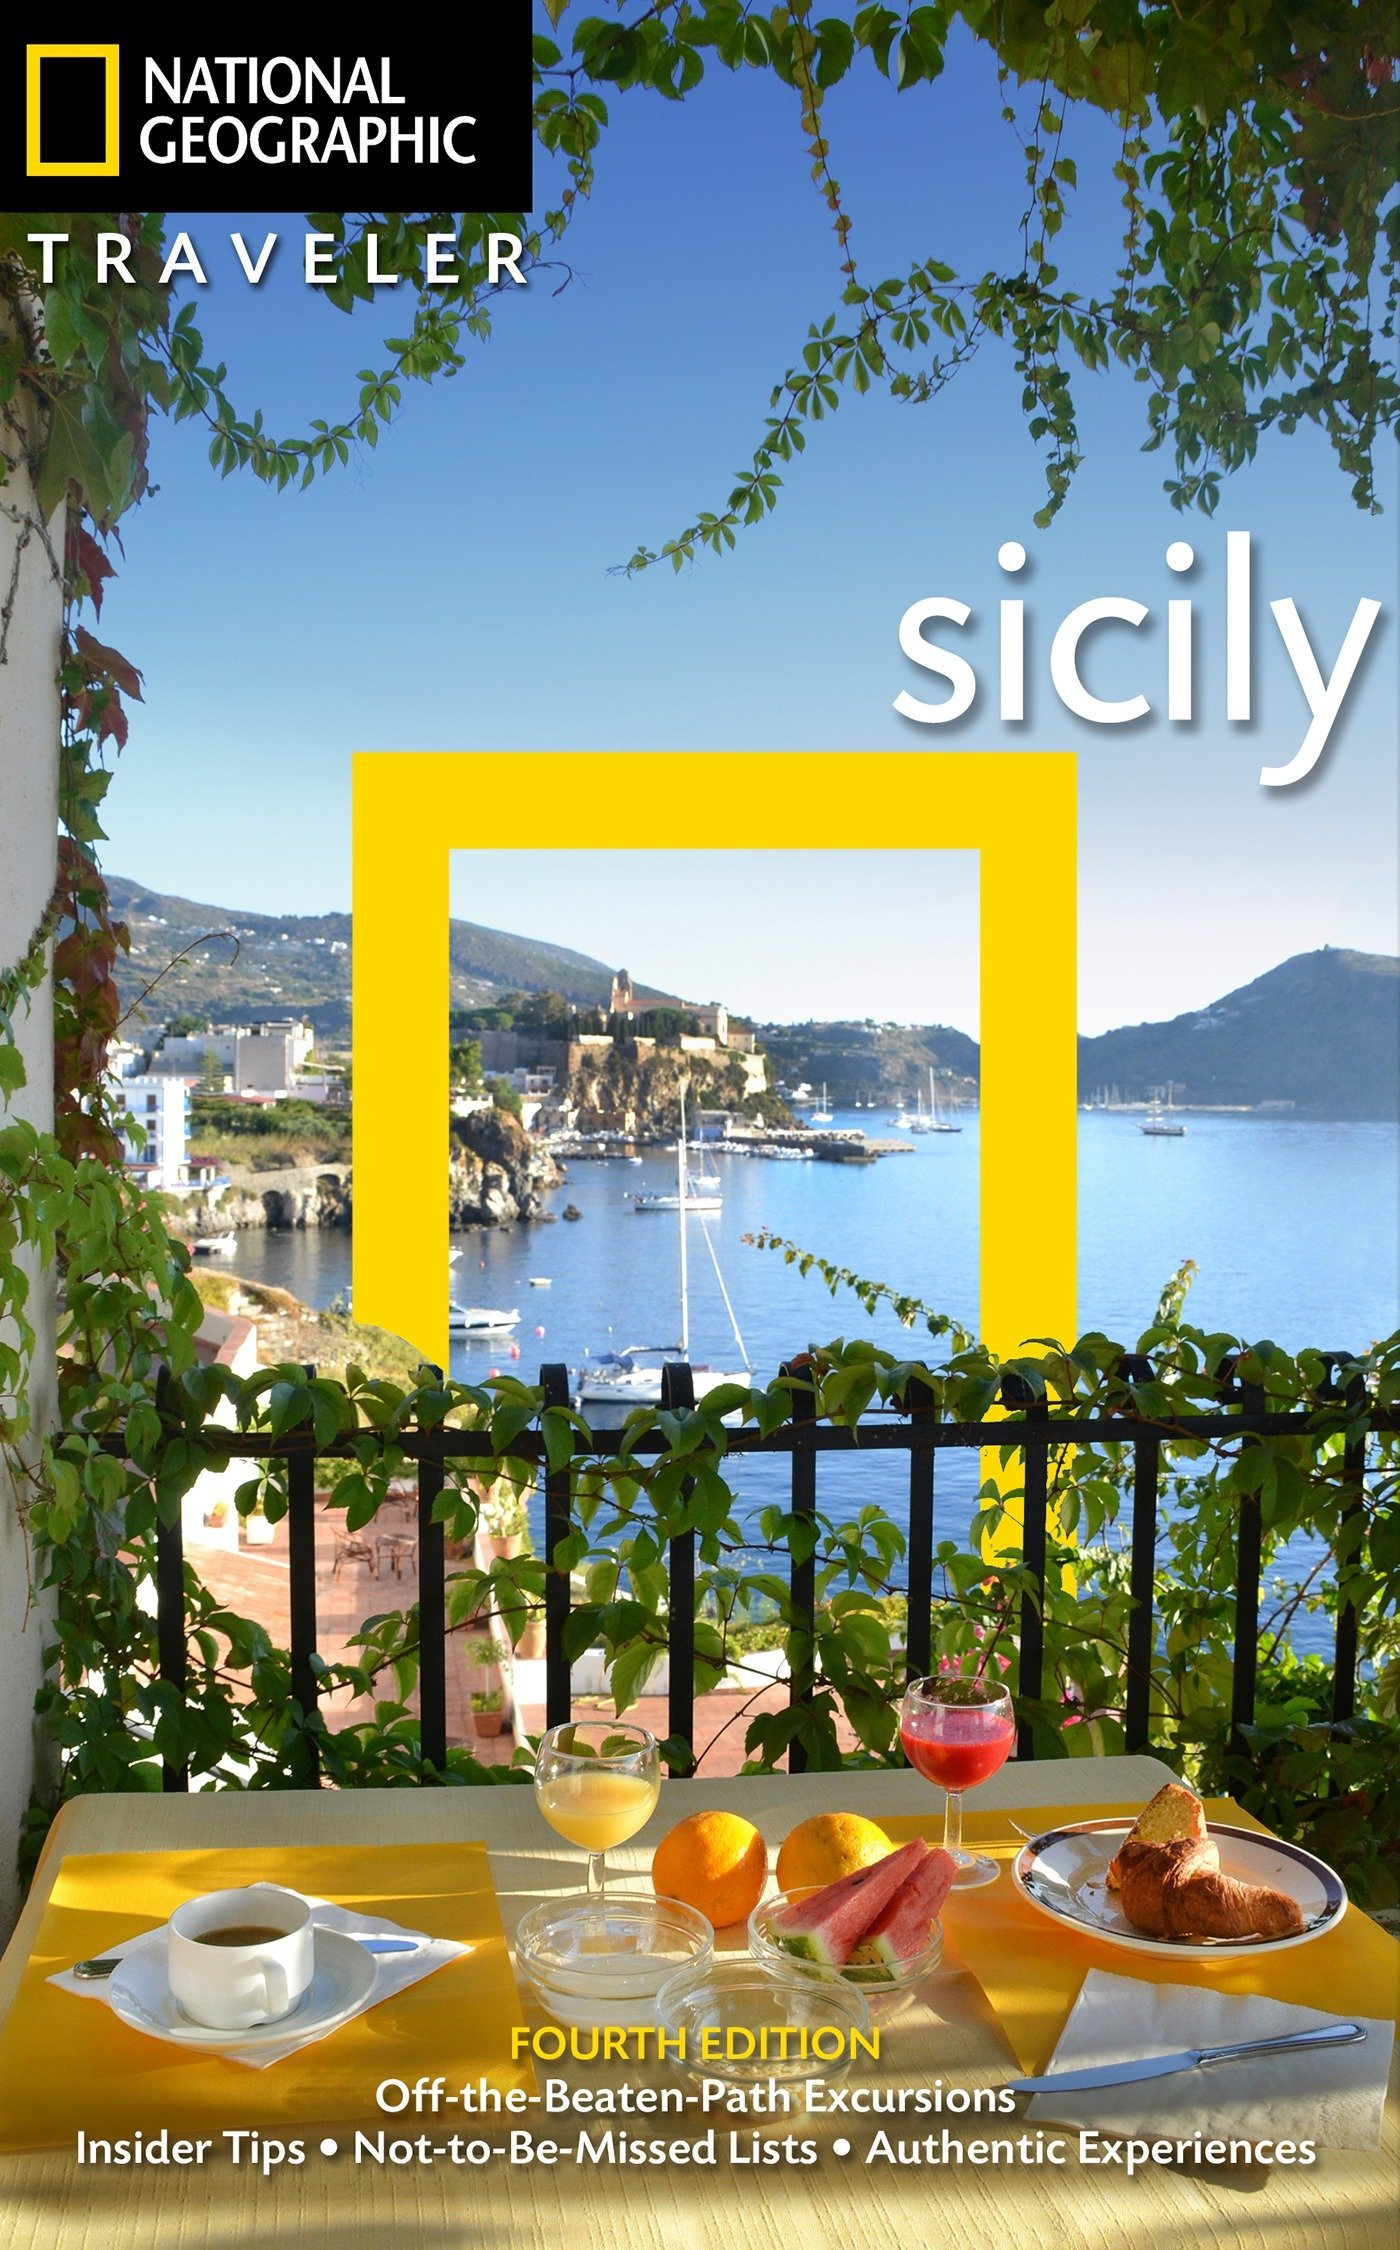 Download National Geographic Traveler: Sicily, 4th Edition pdf